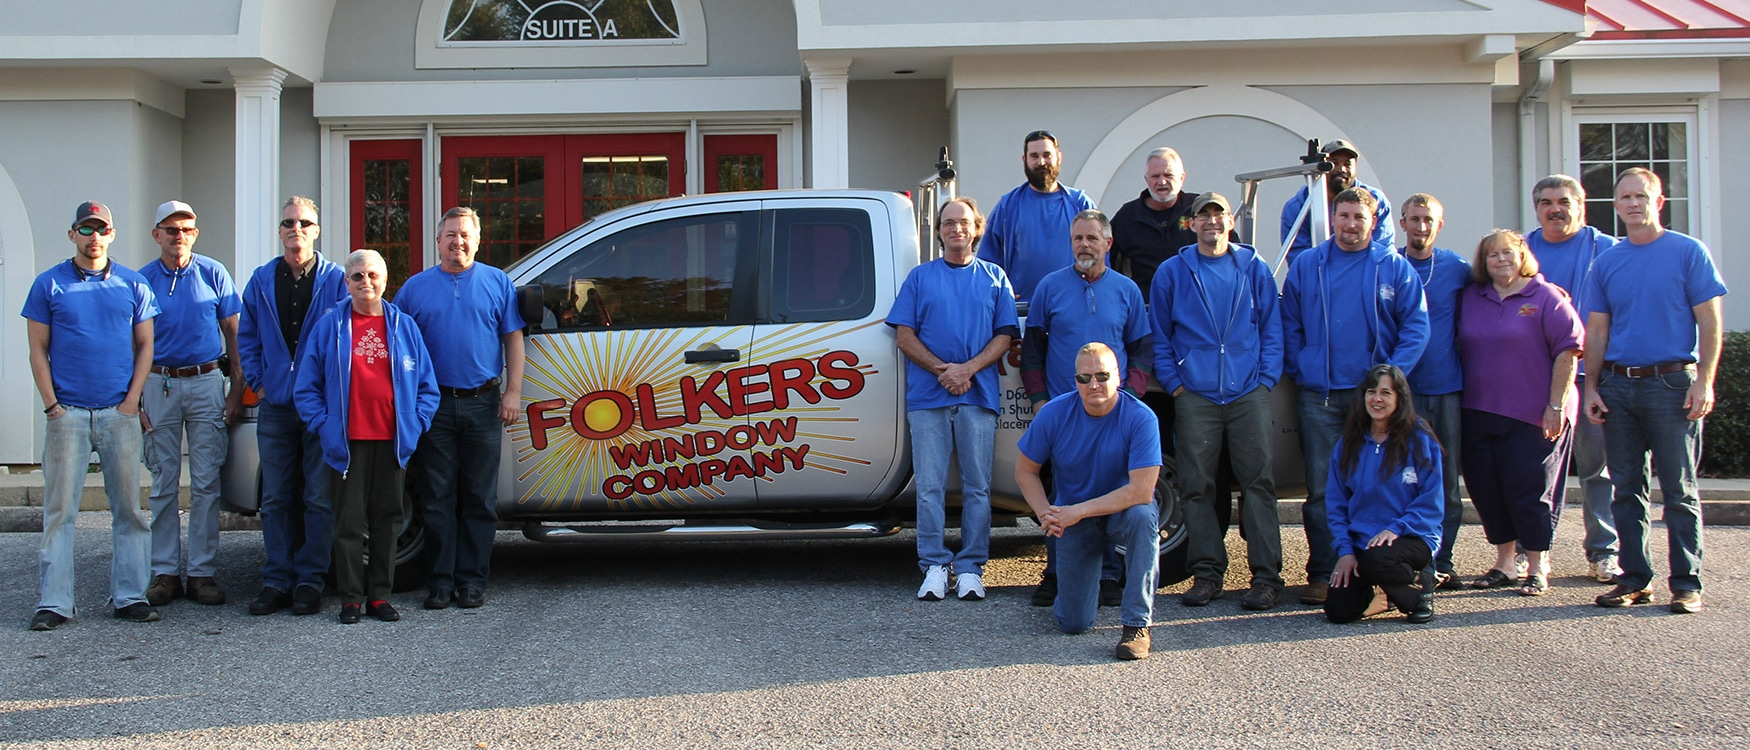 The Folkers Team